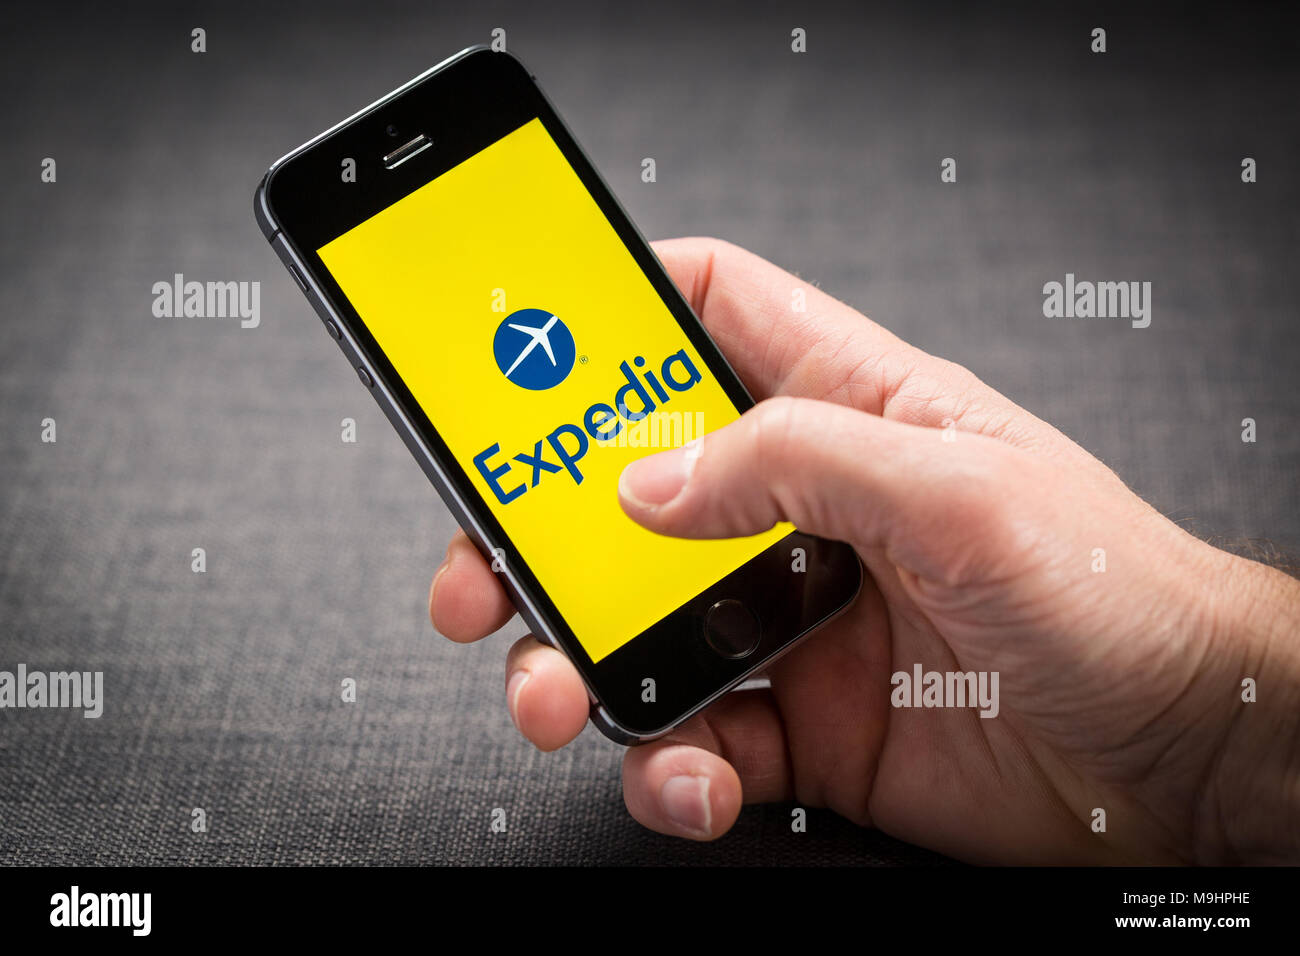 Expedia app and travel website on an iPhone - Stock Image